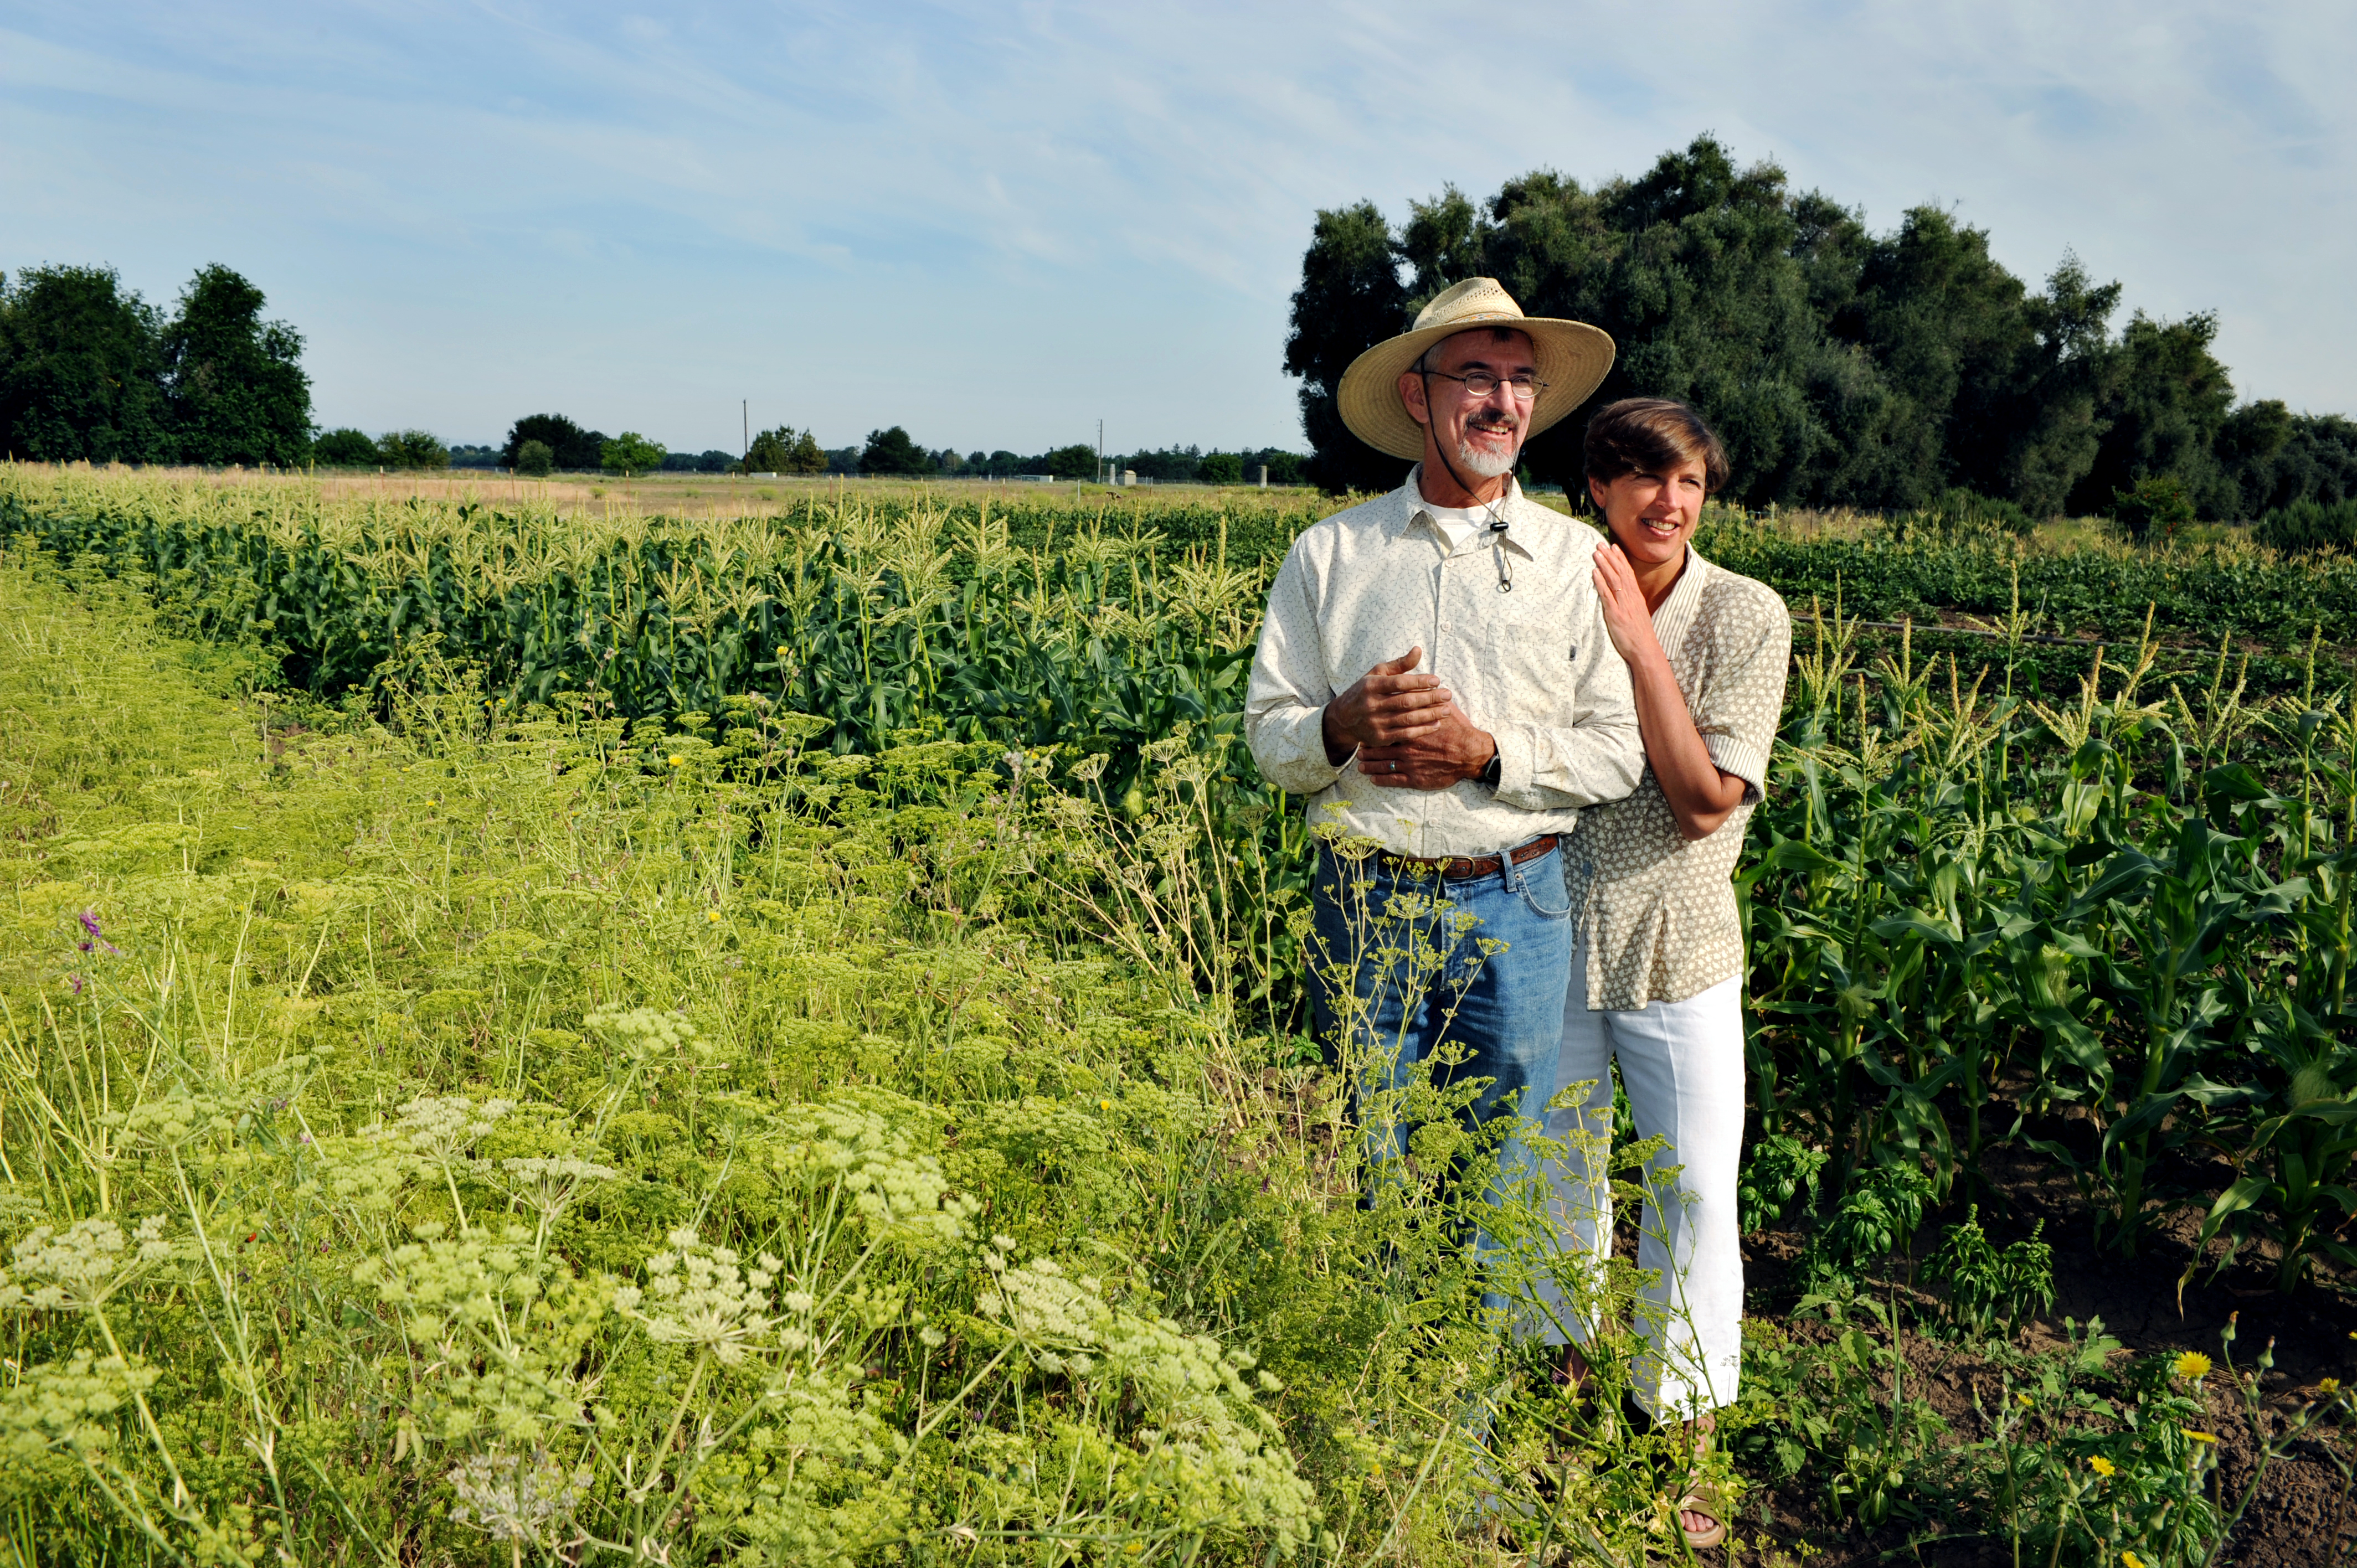 dating sites for organic farmers Single, farmer and in the uk and have had trouble finding a romantic partner join farmer dating service and let us help you meet your perfect local match, farmer dating site.